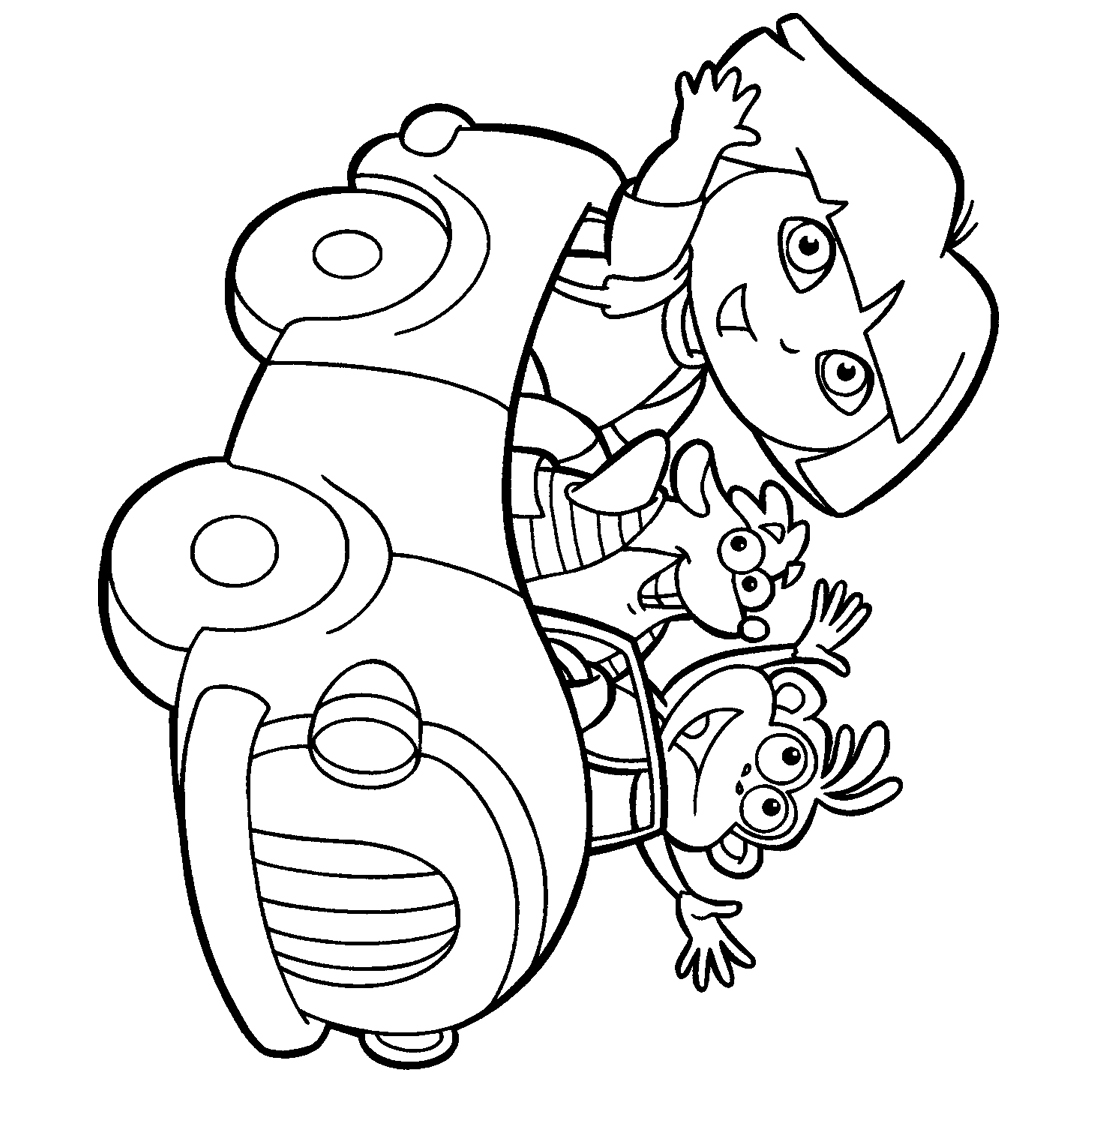 kids cool coloring pages - photo#18